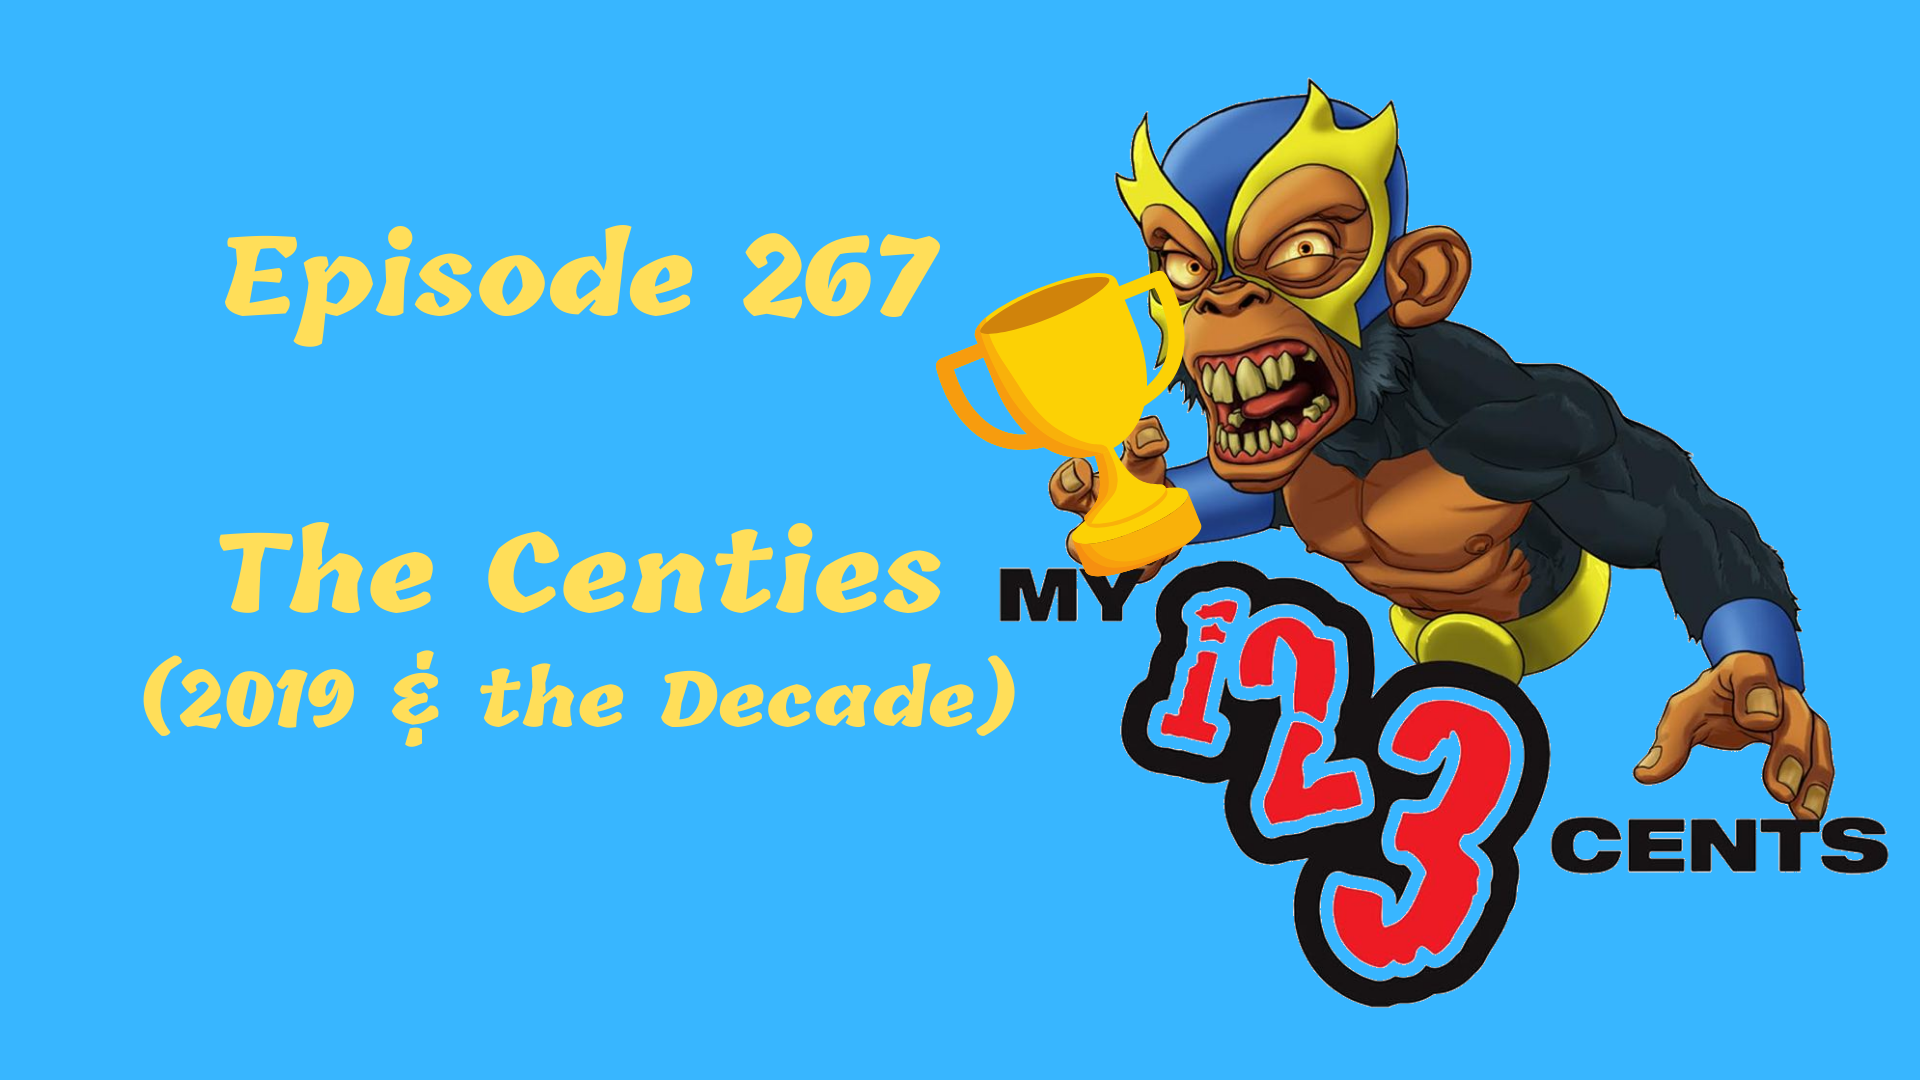 My 1-2-3 Cents Episode 267: The Centies